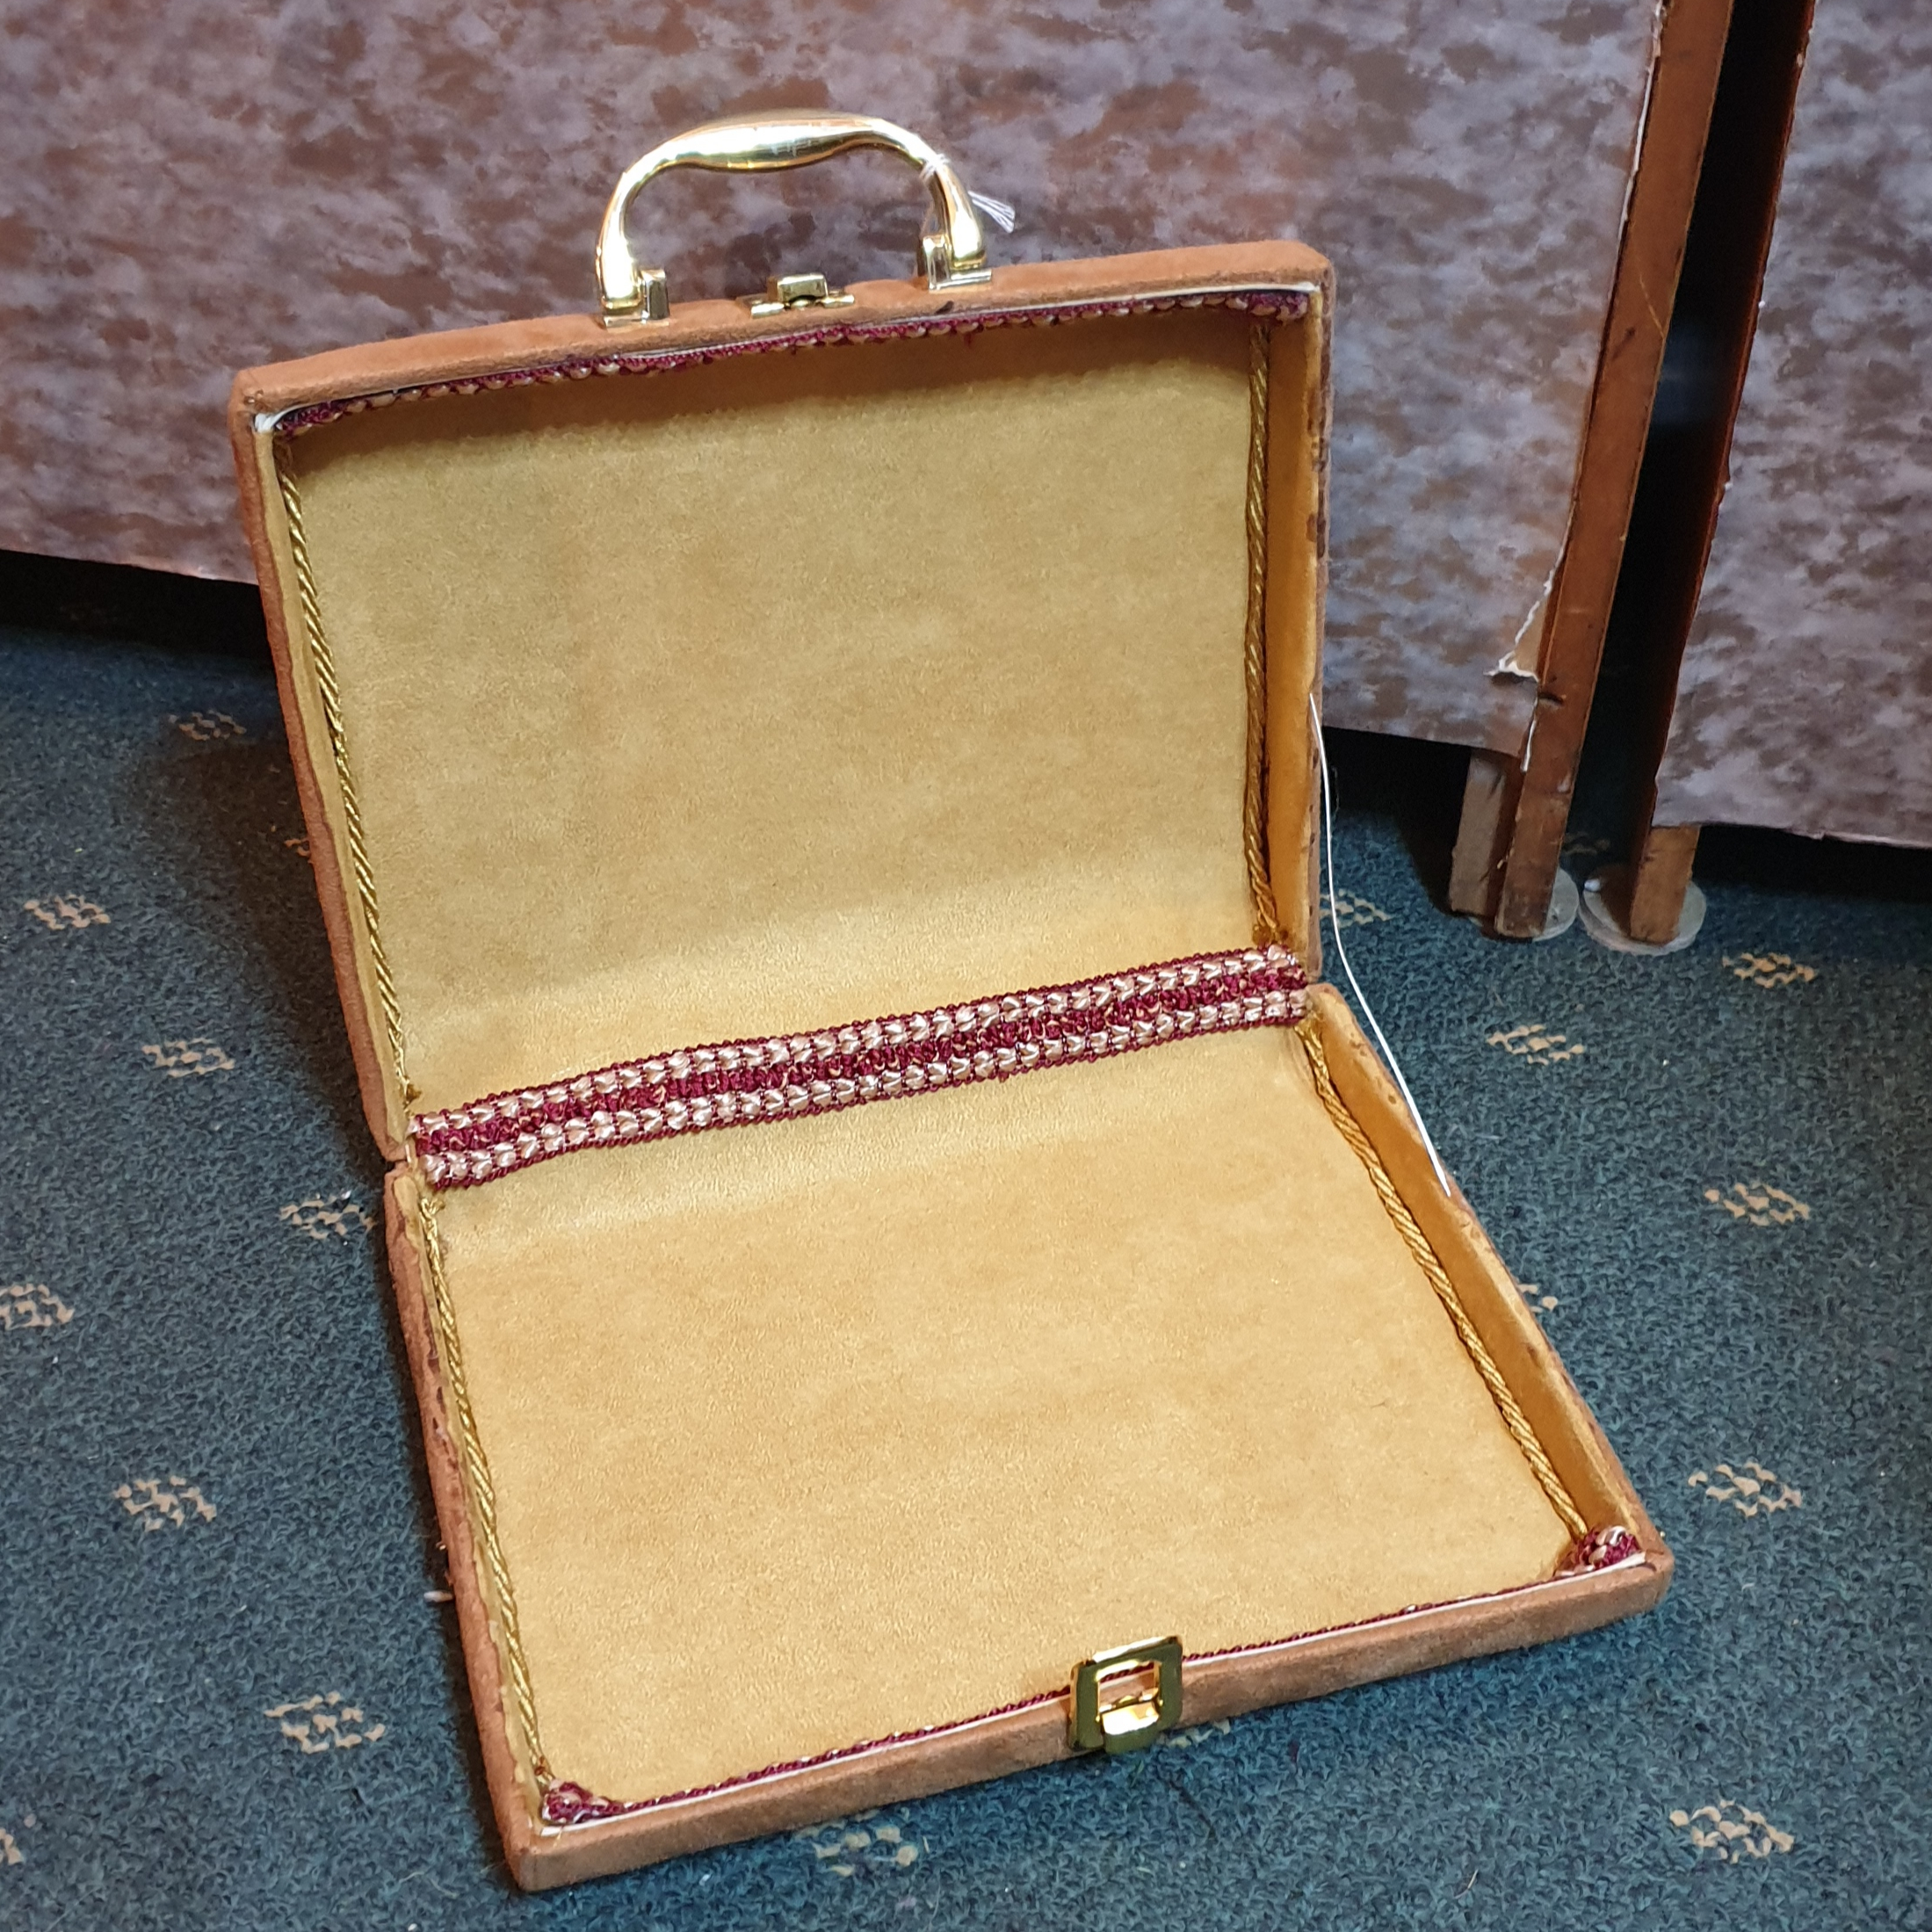 Carry case, suedette material